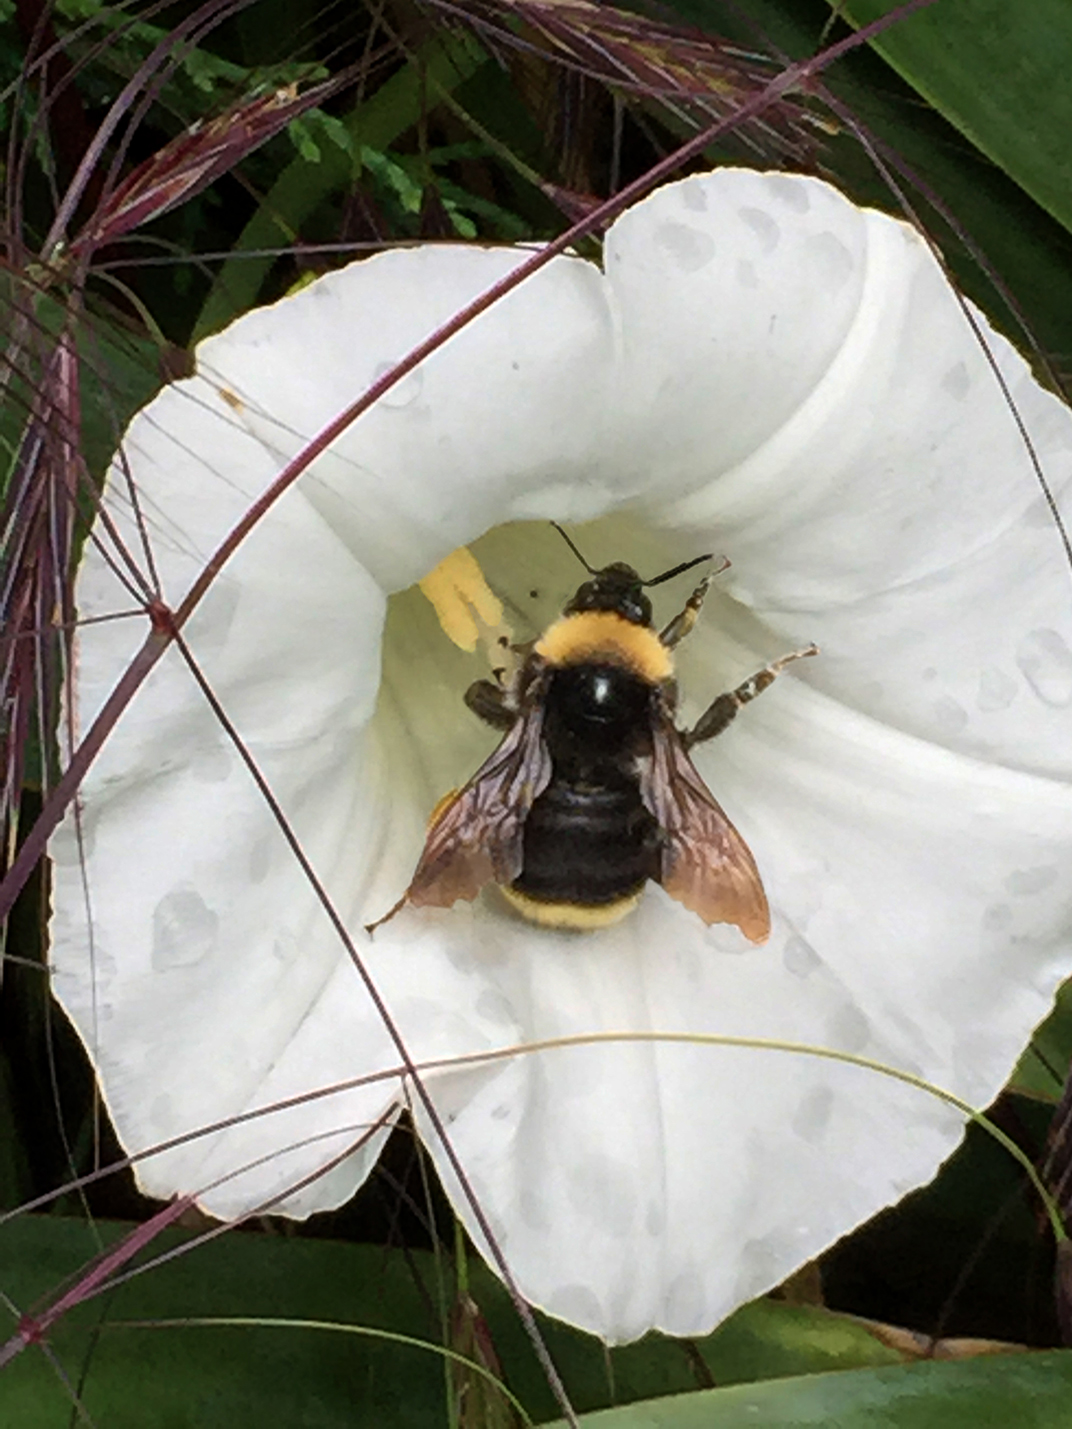 bumblebee_exiting_flower_small